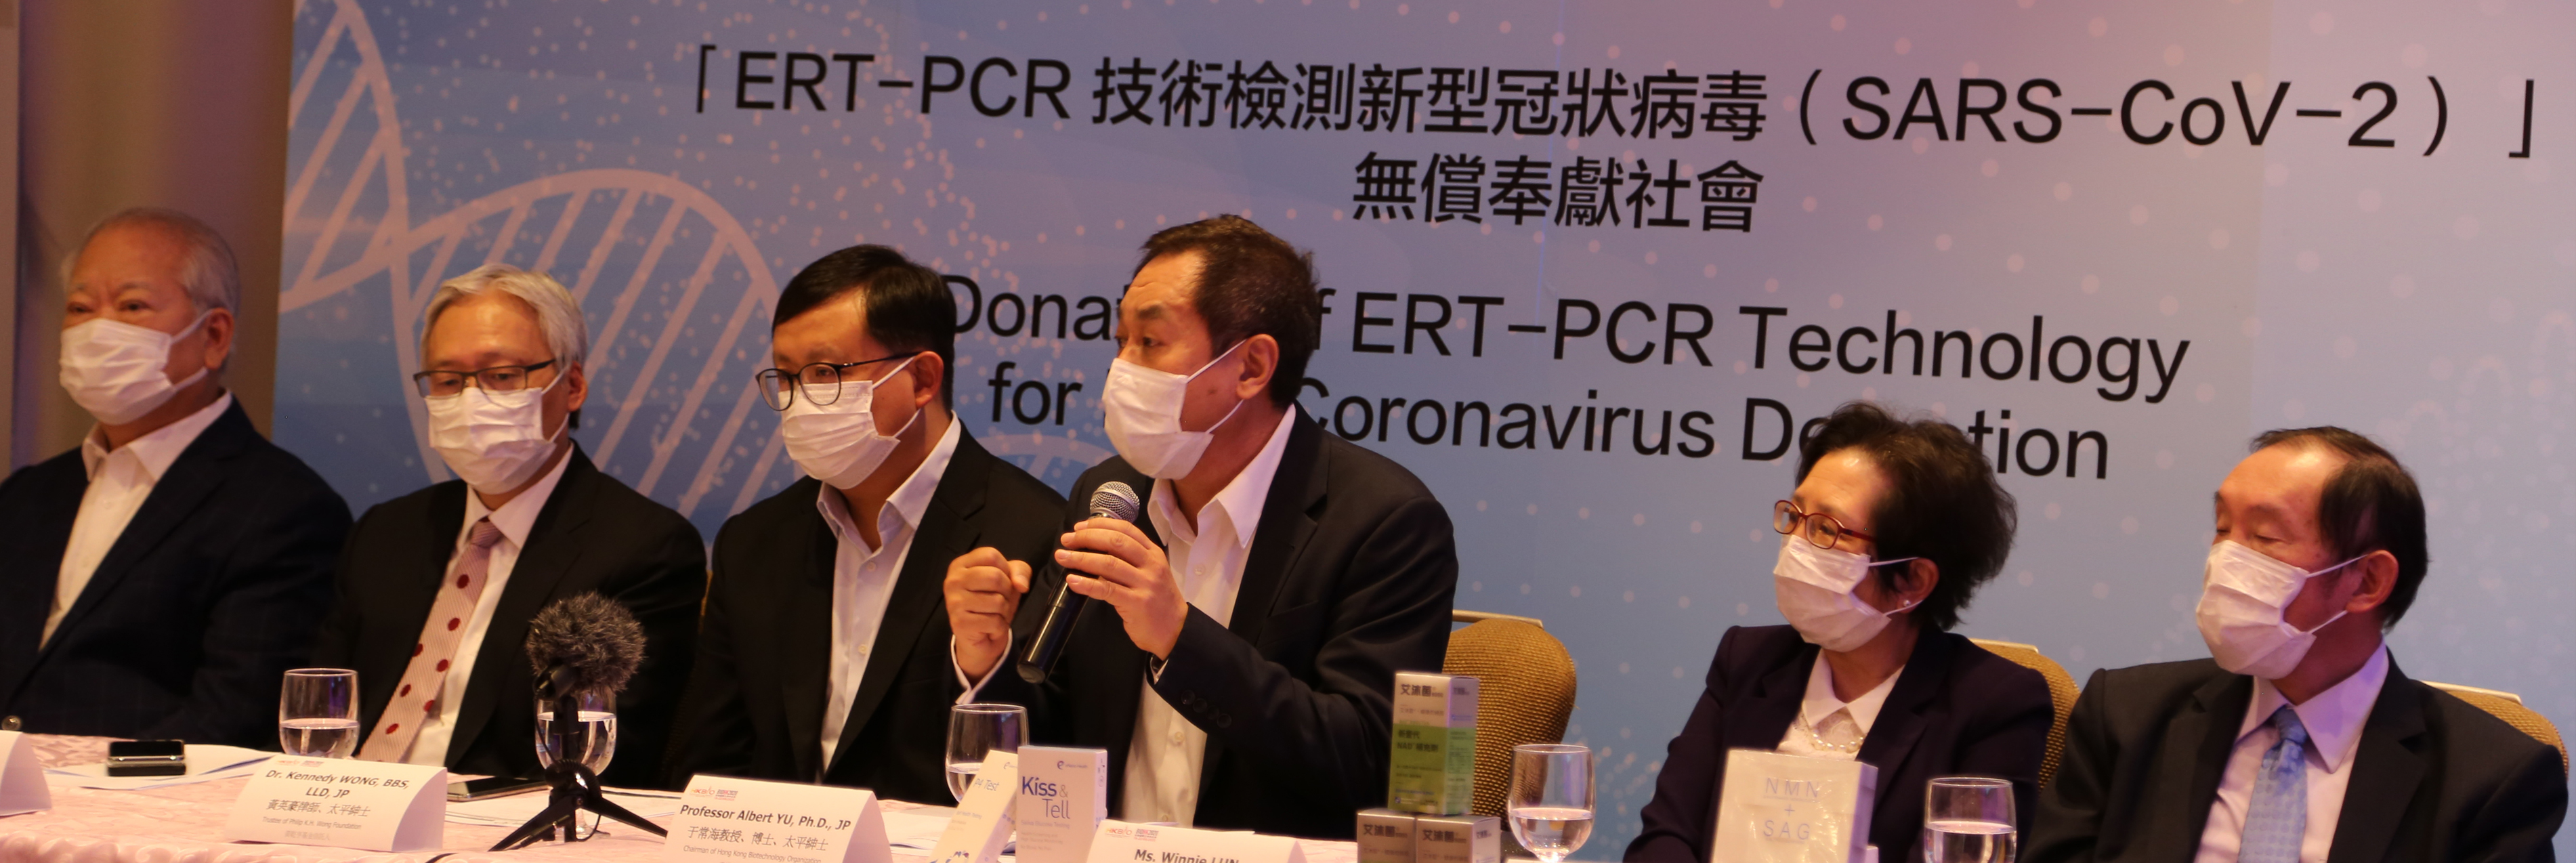 Press Conference for Donation of ERT-PCR technology for new coronavirus detection